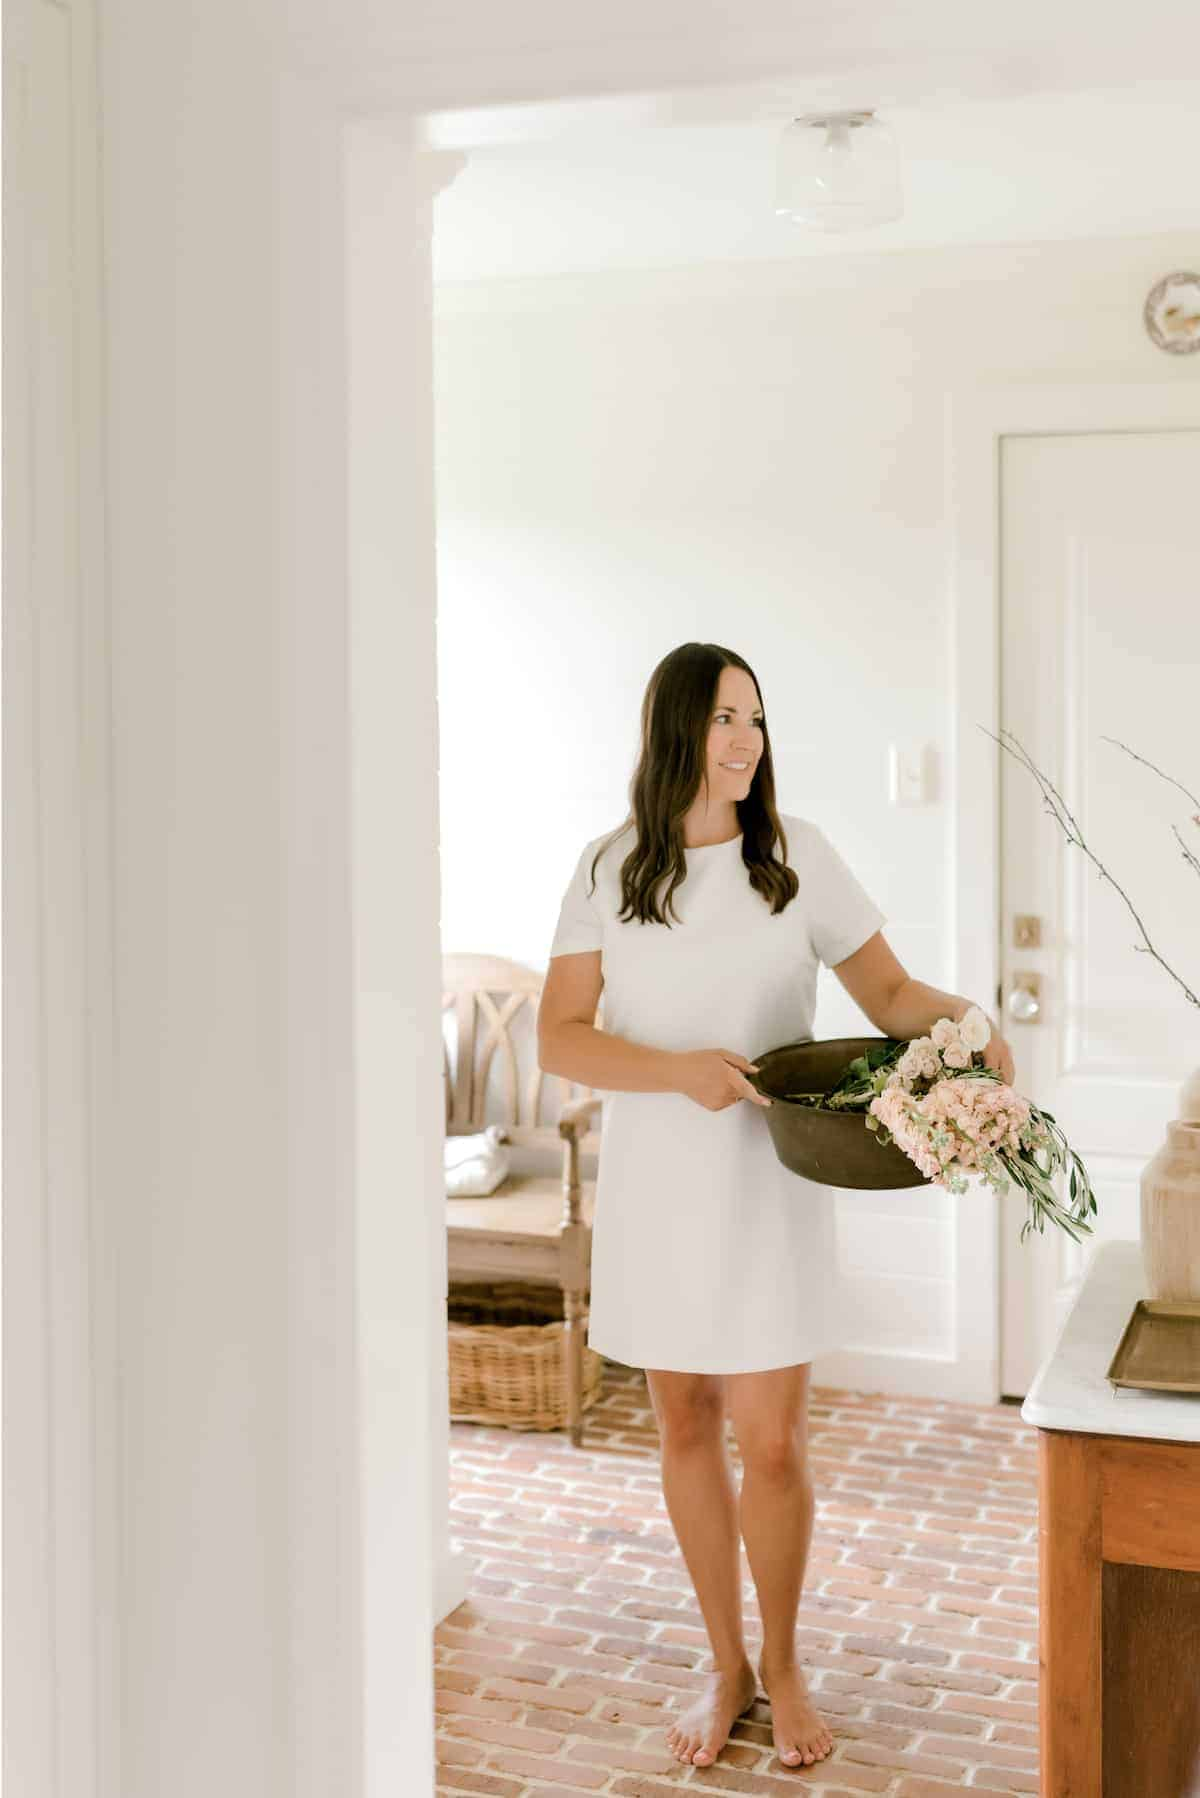 A woman in a white paneled mud room holding a basket of flowers.